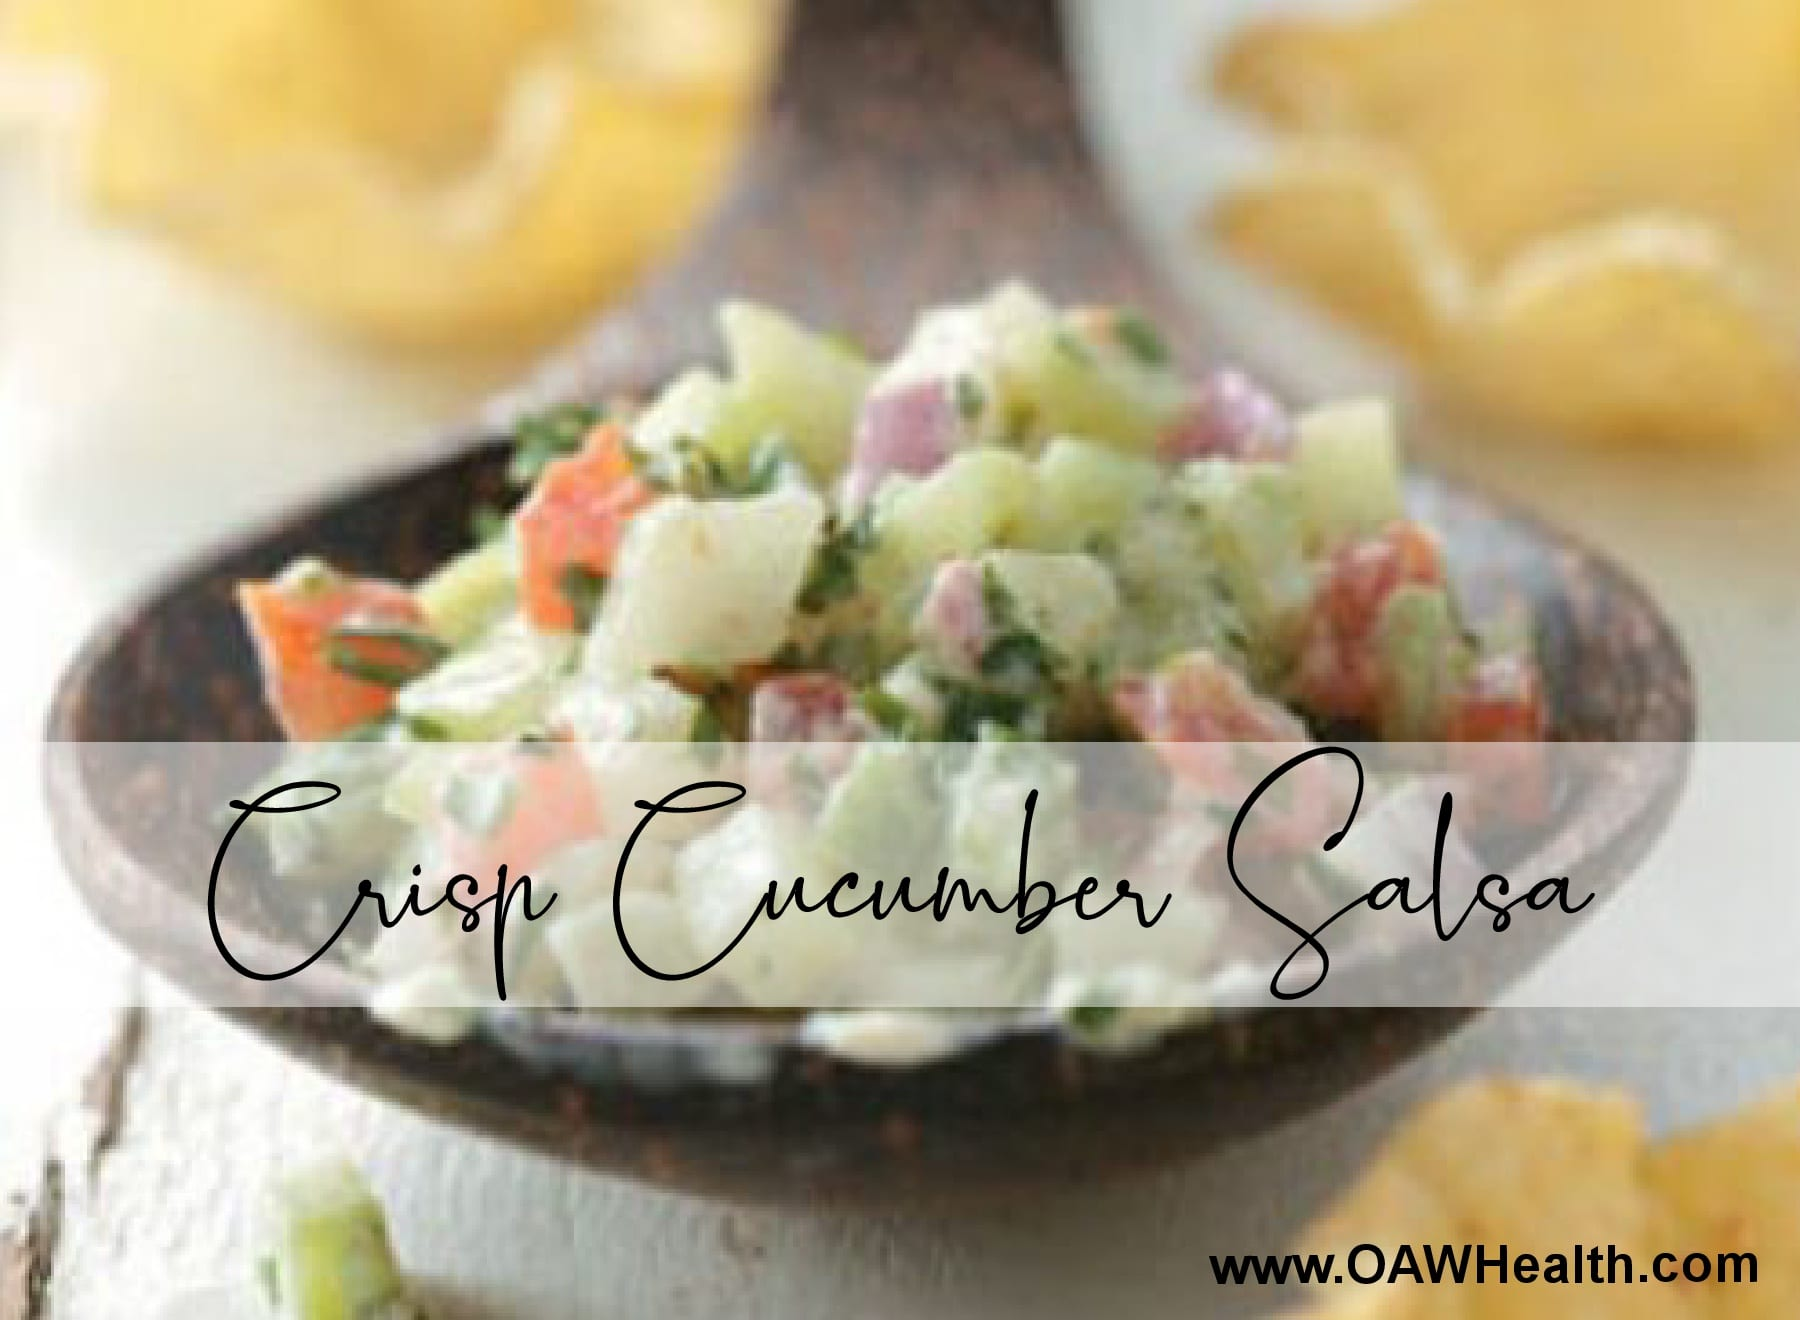 Crisp Cucumber Salsa Recipe